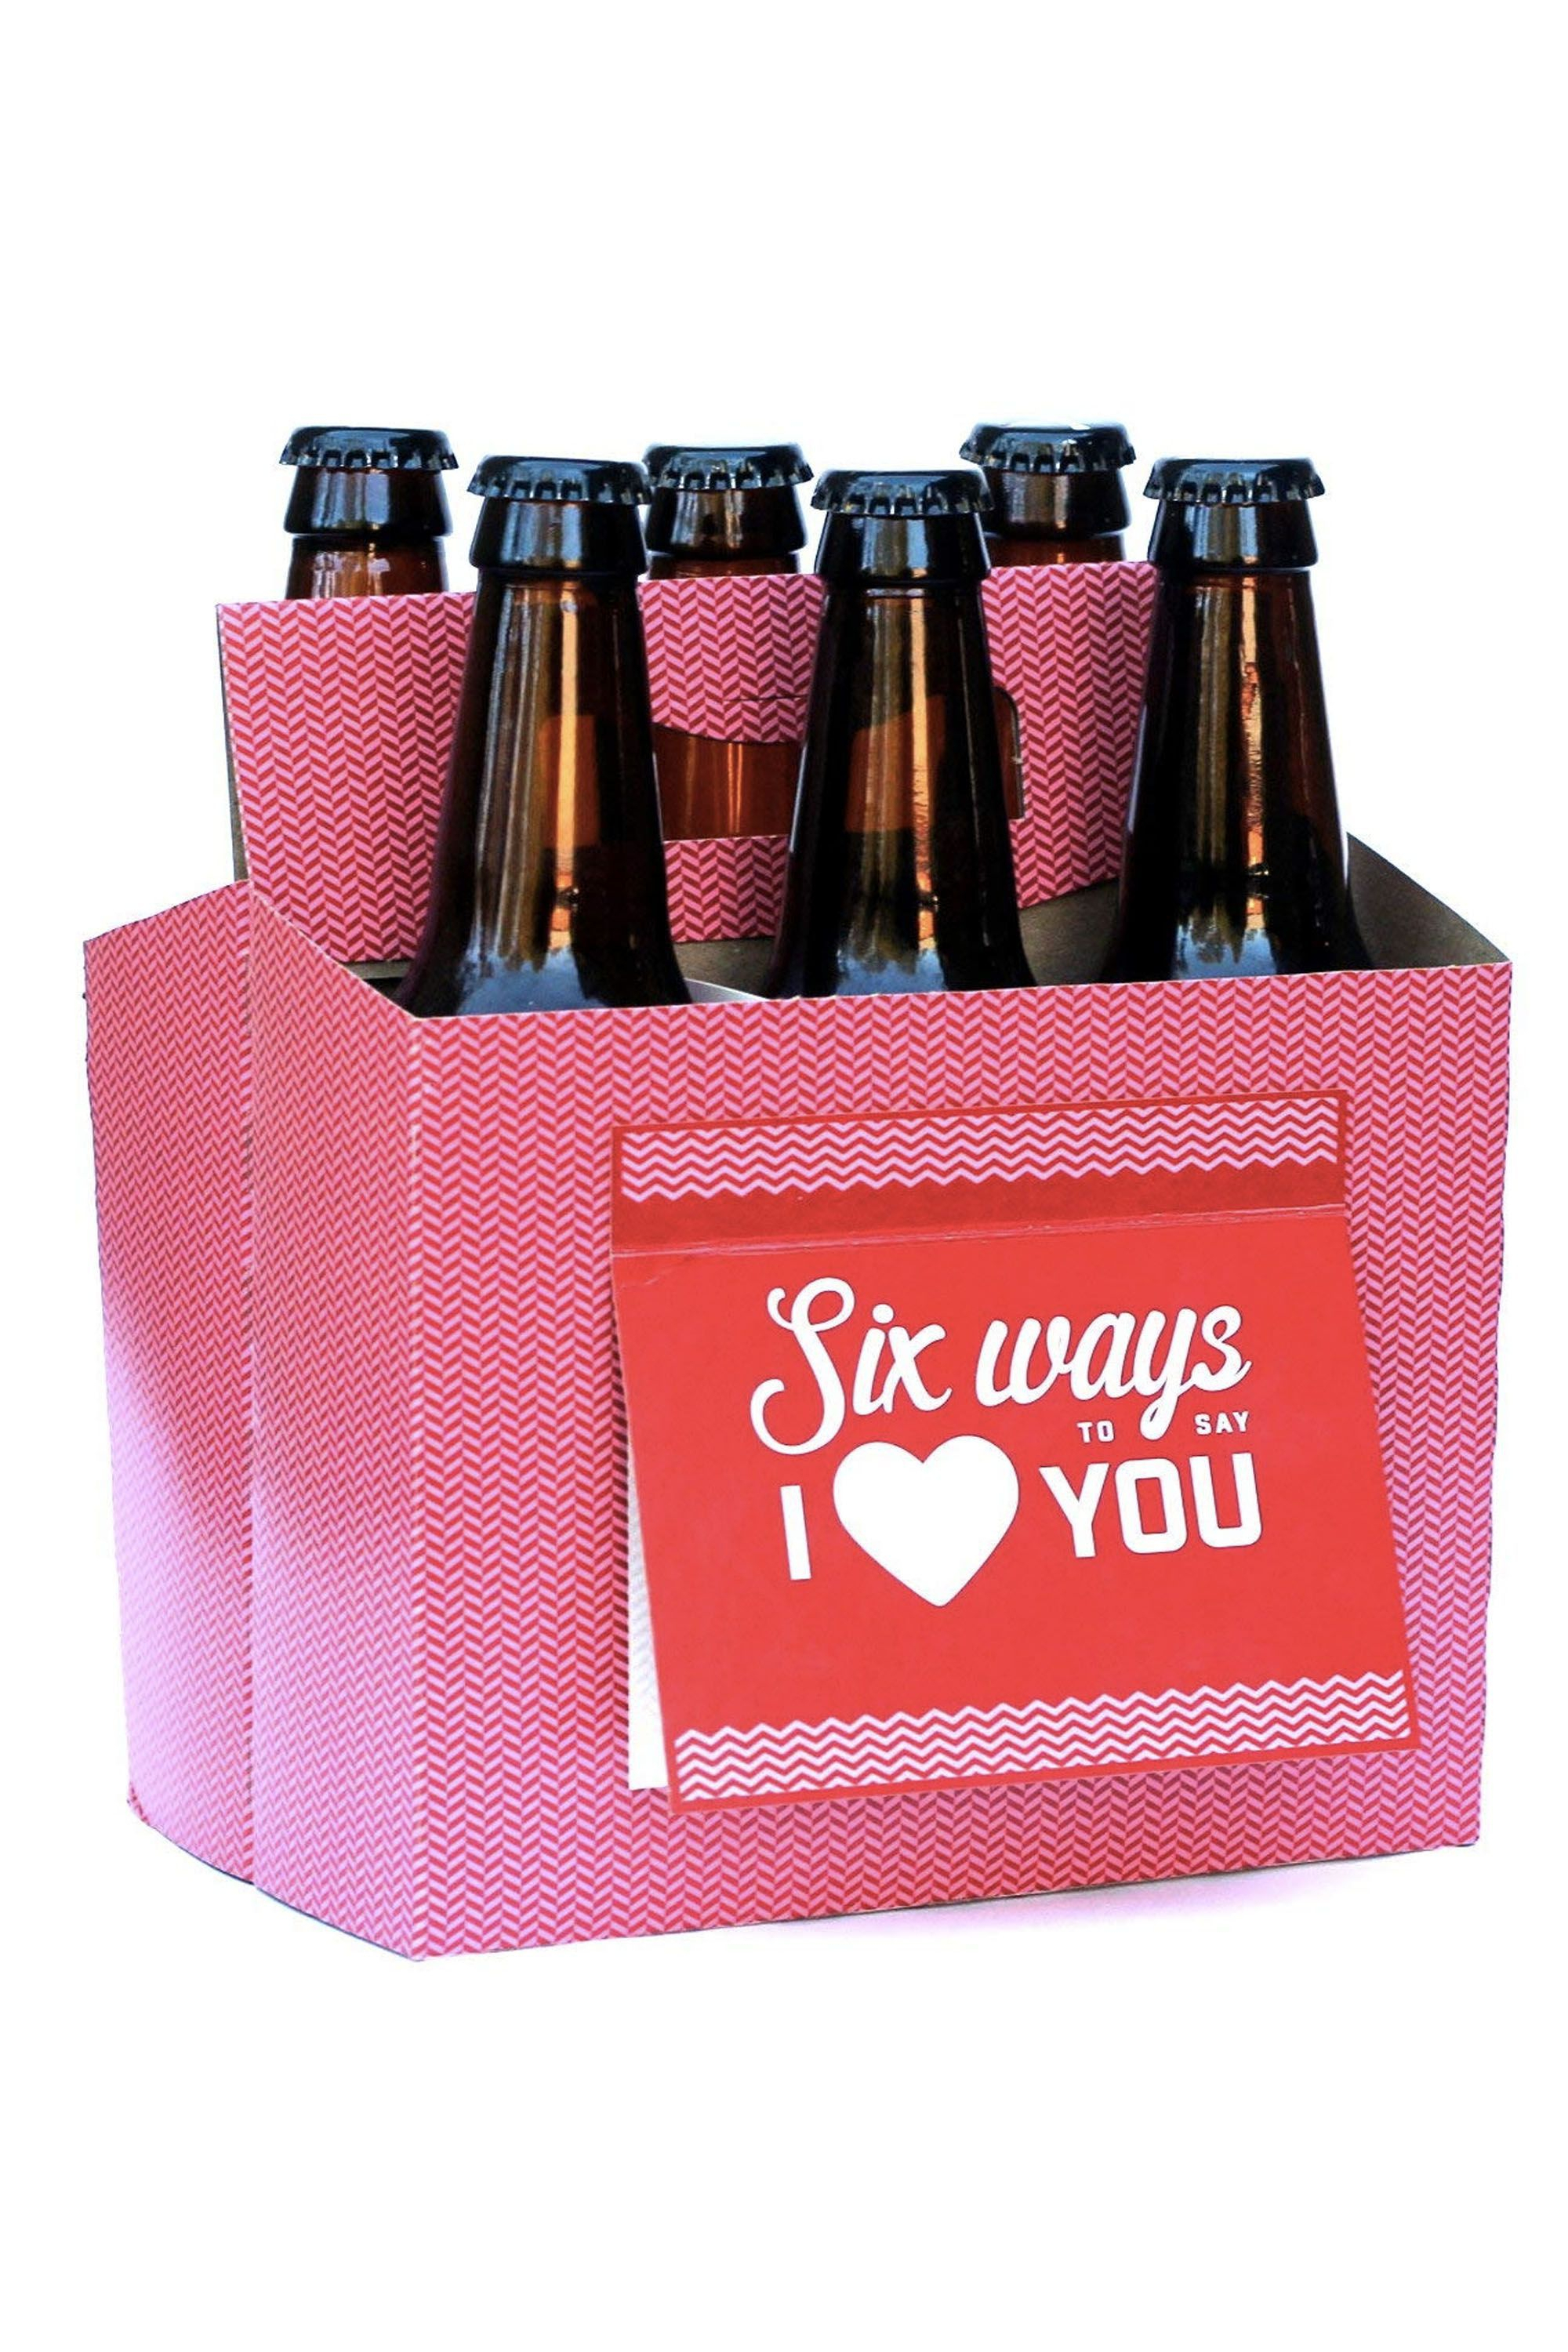 10 Wonderful Unique Ideas For Valentines Day For Him 50 best valentines day gifts for him 2019 good ideas for 2020